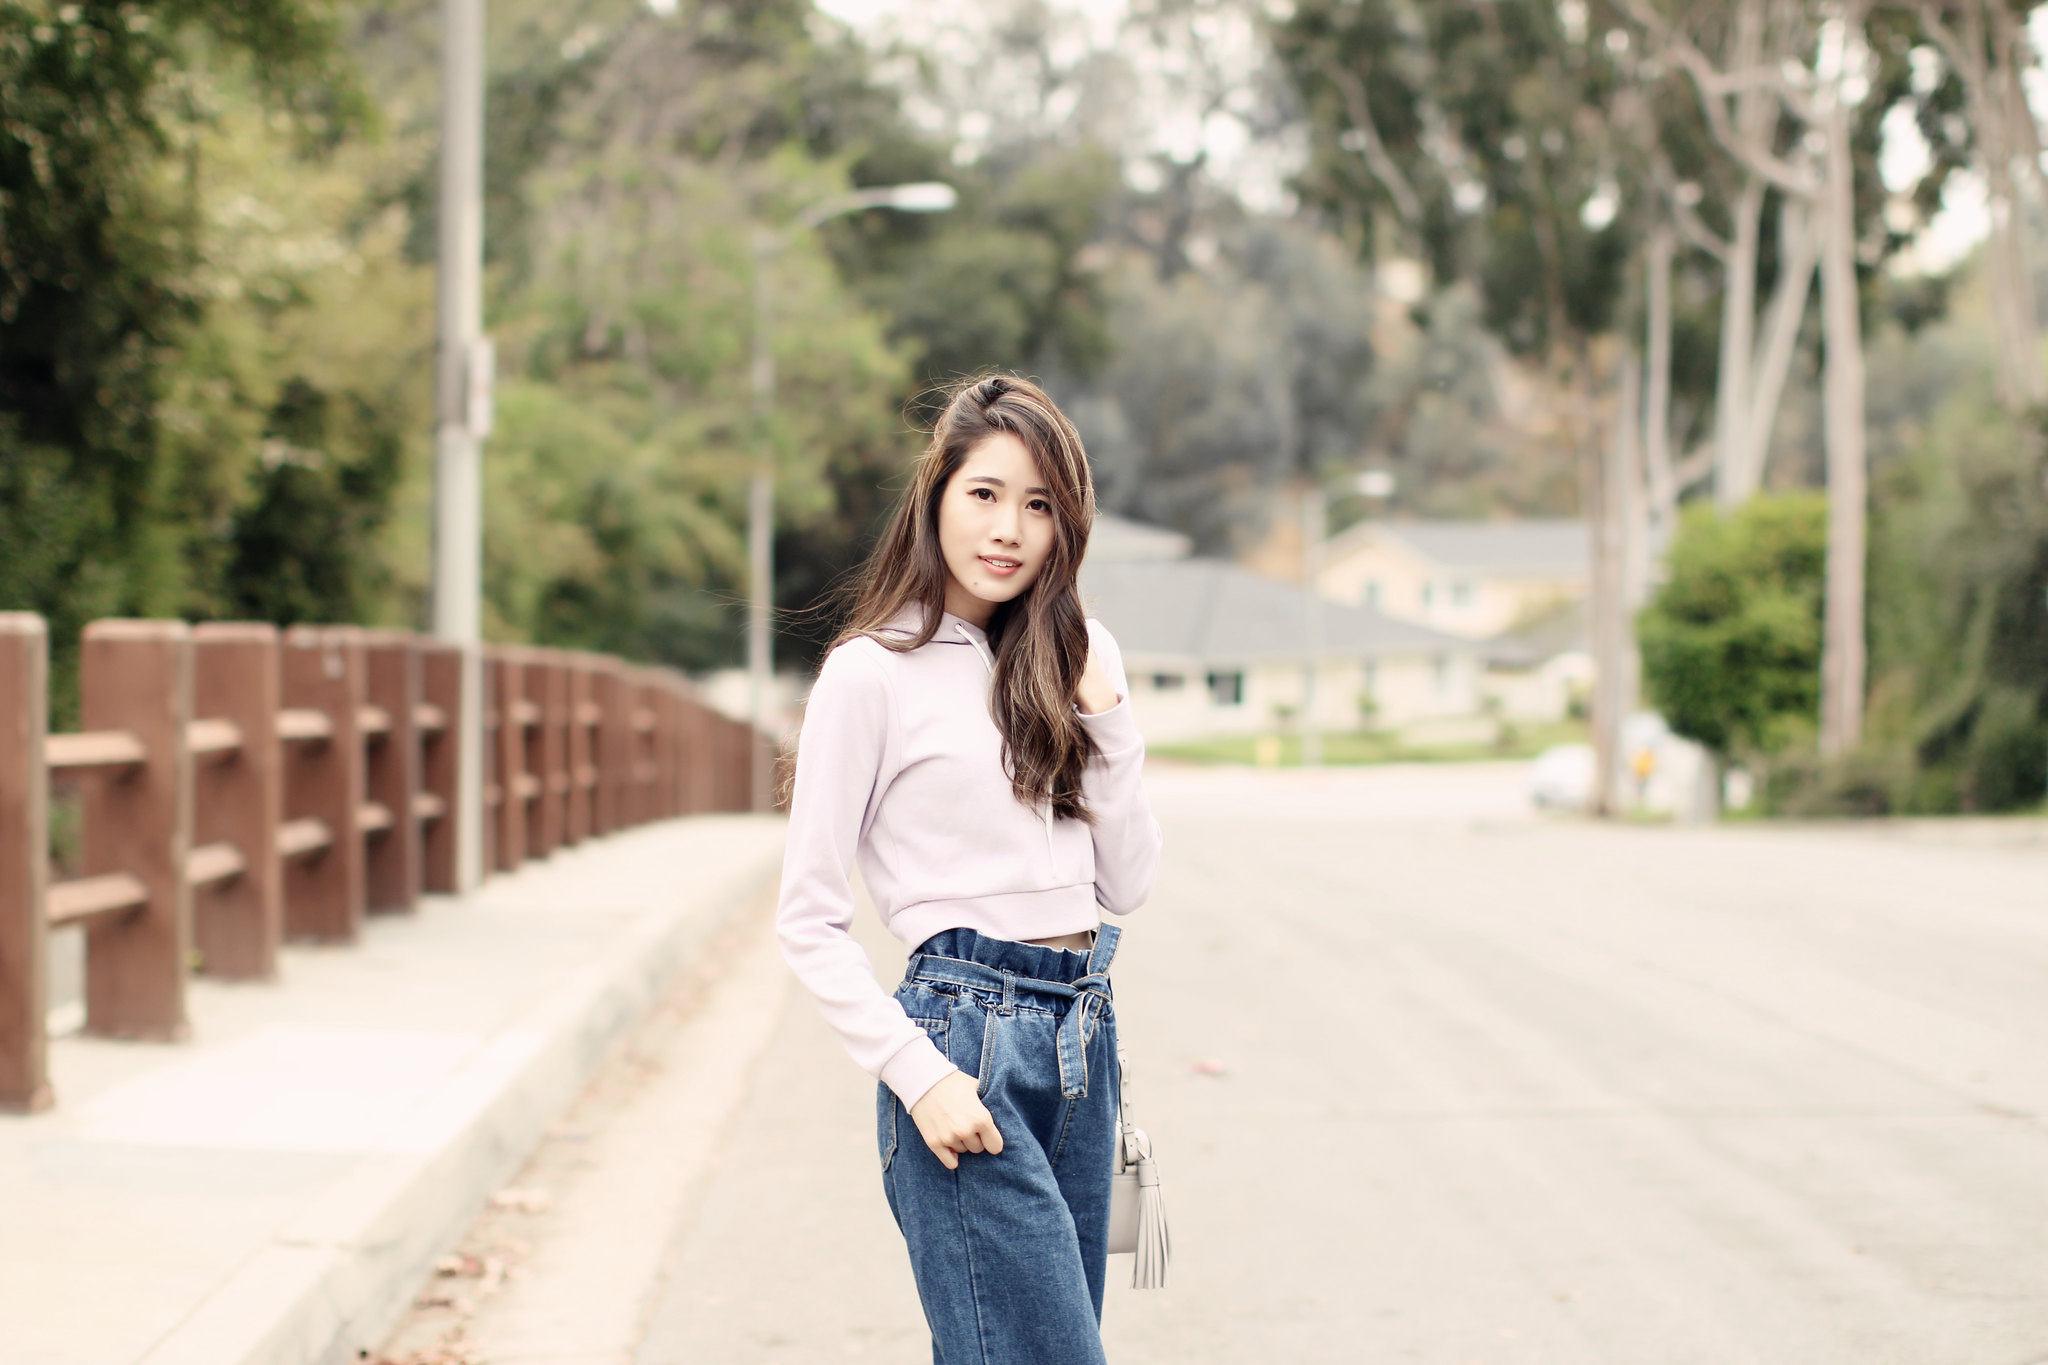 5057-ootd-fashion-style-outfitoftheday-wiwt-streetstyle-zara-f21xme-denim-thrifted-guess-koreanfashion-lookbook-elizabeeetht-clothestoyouuu